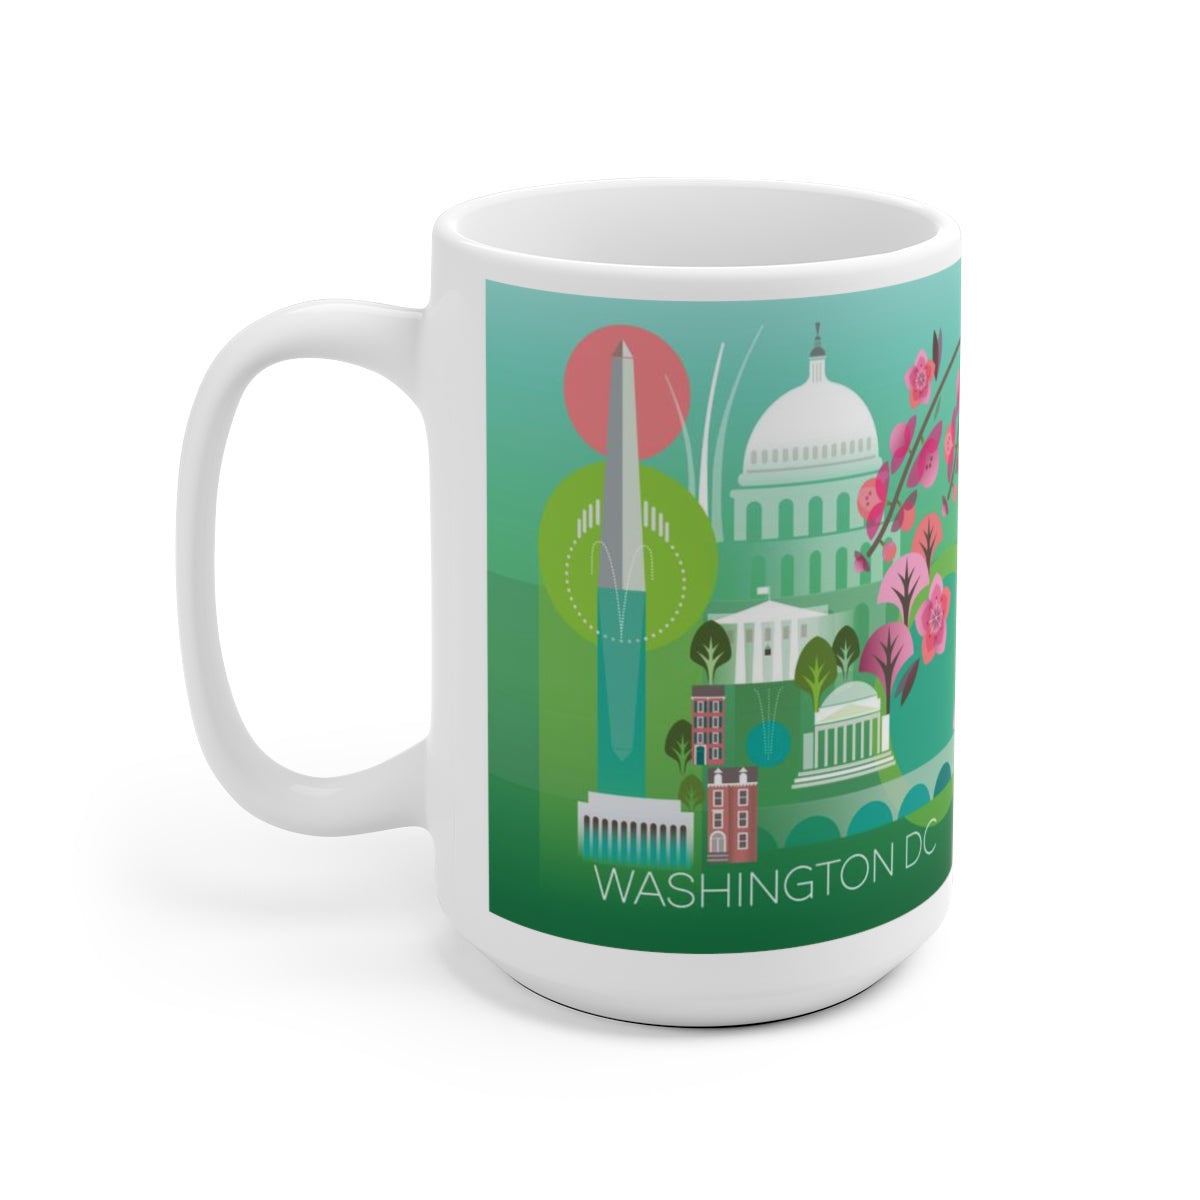 WASHINGTON, DC 15 OZ CERAMIC MUG